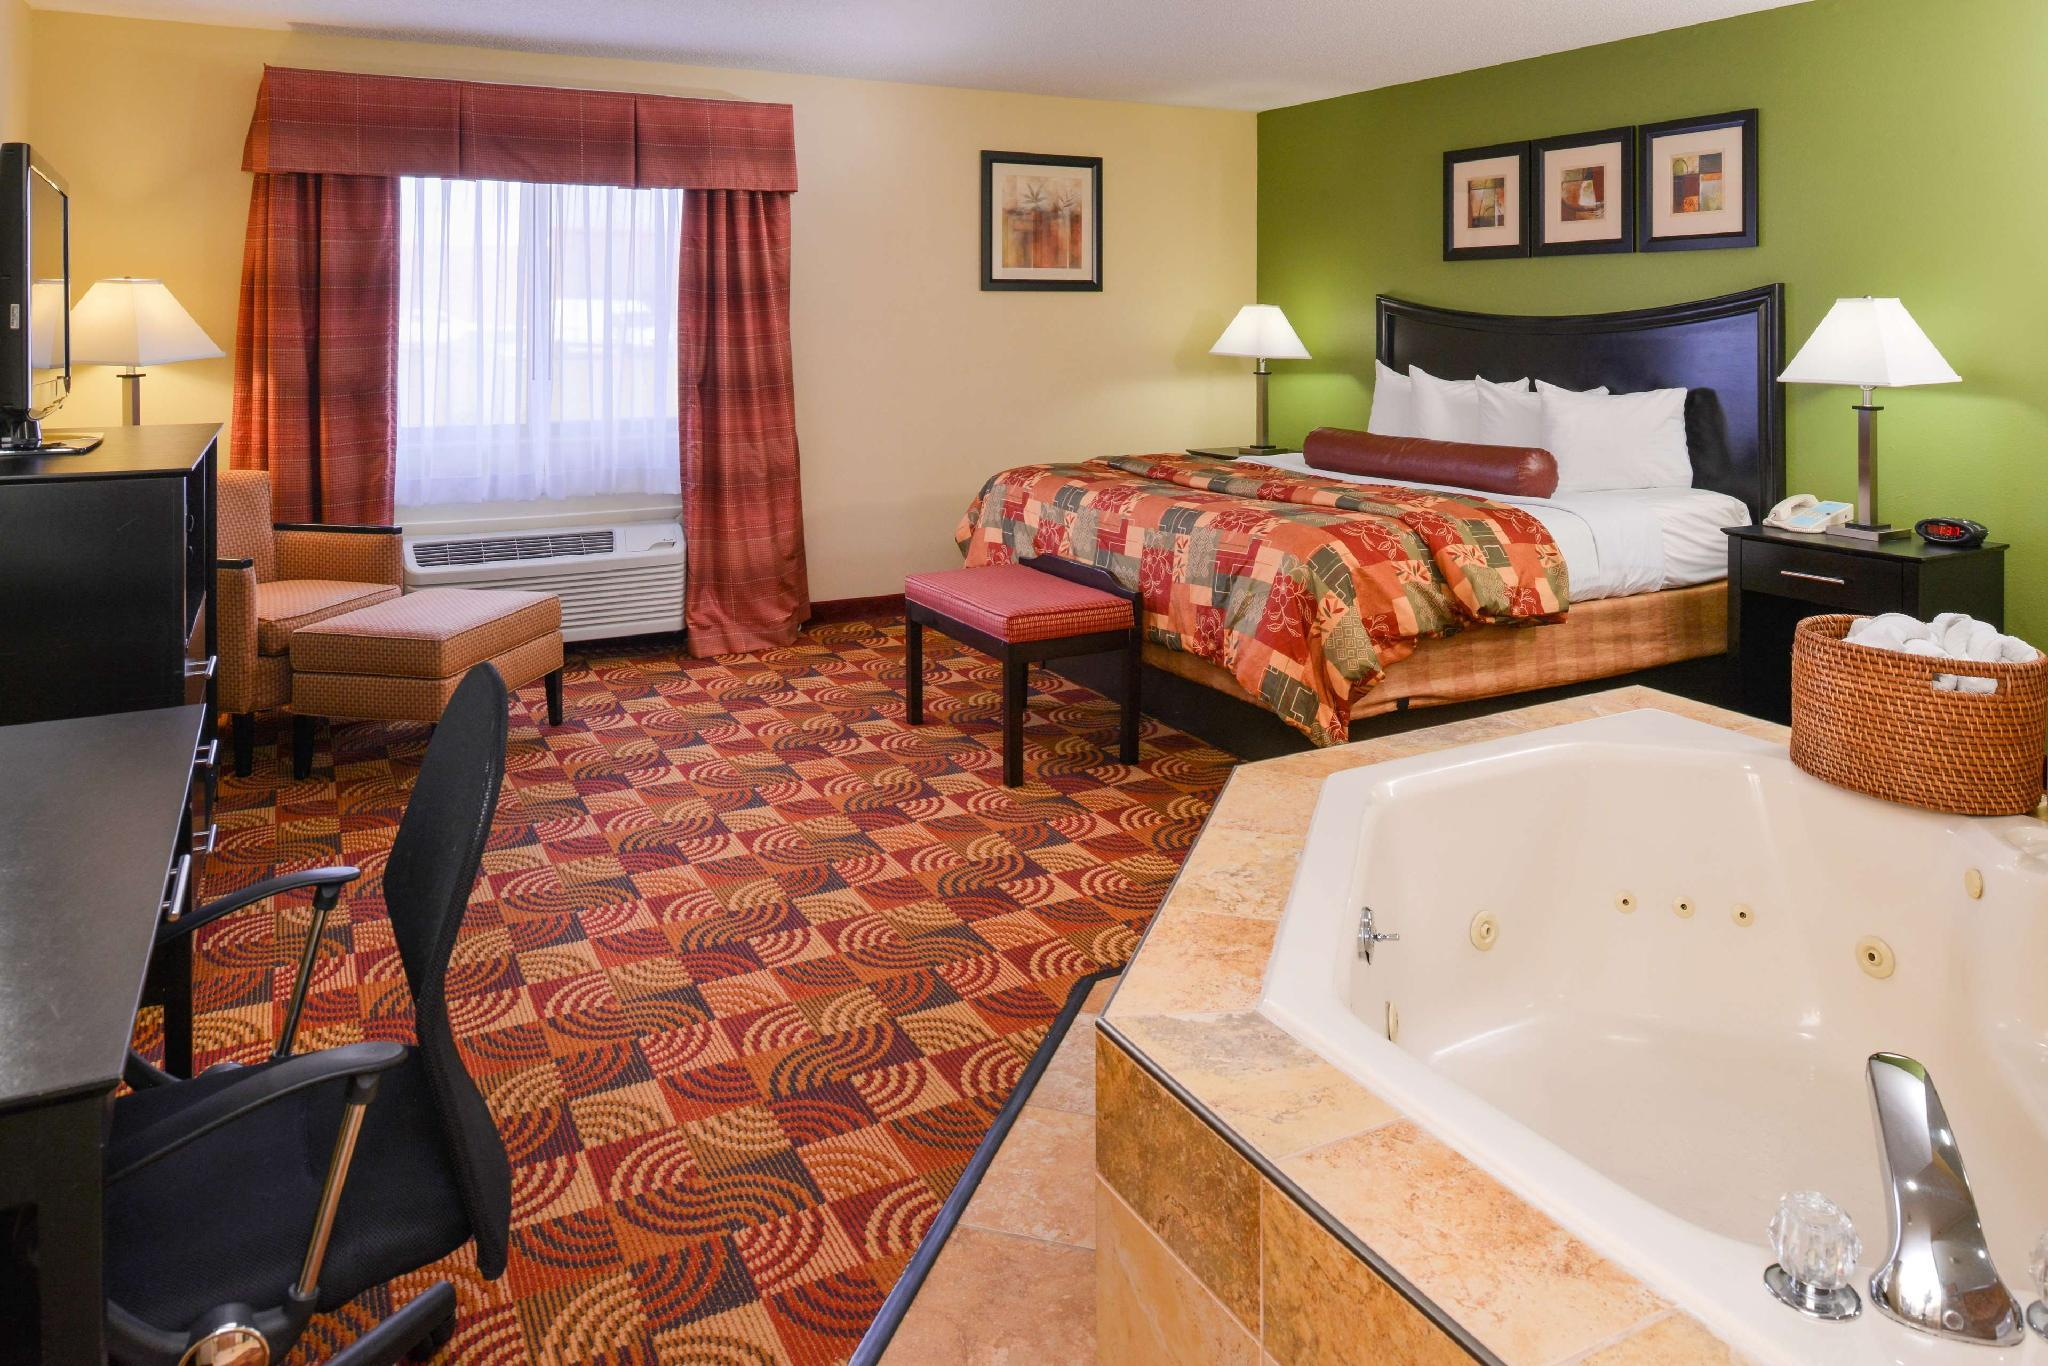 Best Western Plus Canal Winchester Inn - Columbus South East, Franklin